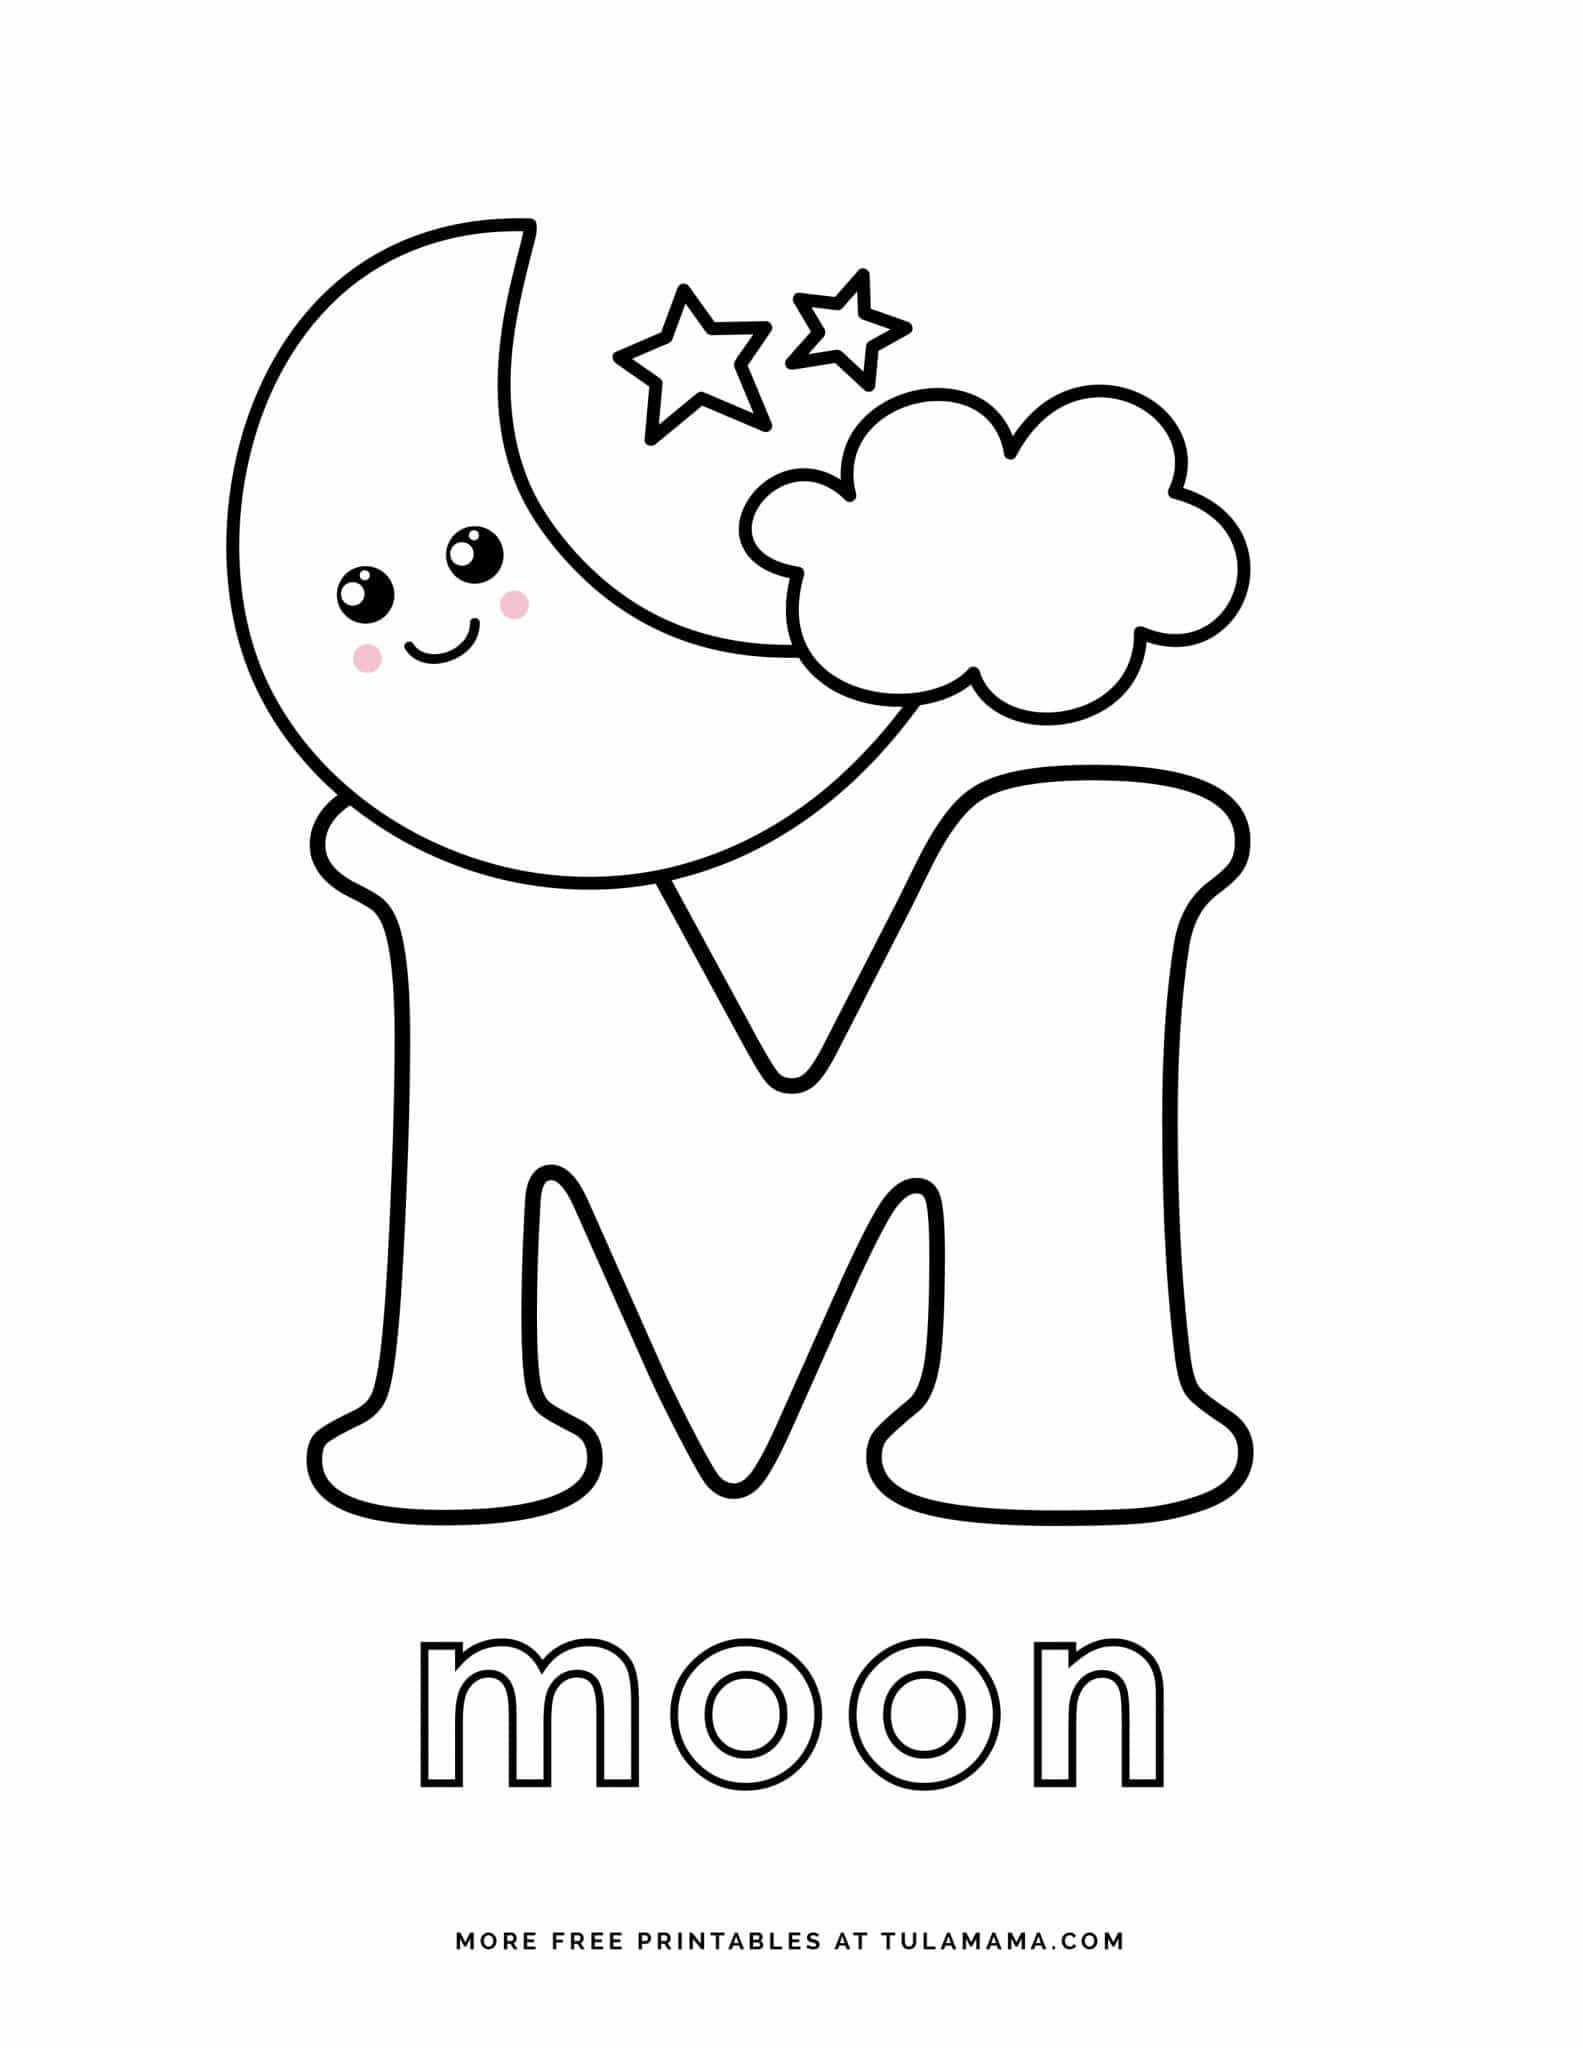 Fun And Easy To Print Abc Coloring Pages For Preschoolers Kindergartners In 2021 Abc Coloring Pages Abc Coloring Alphabet Coloring Pages [ 2048 x 1583 Pixel ]